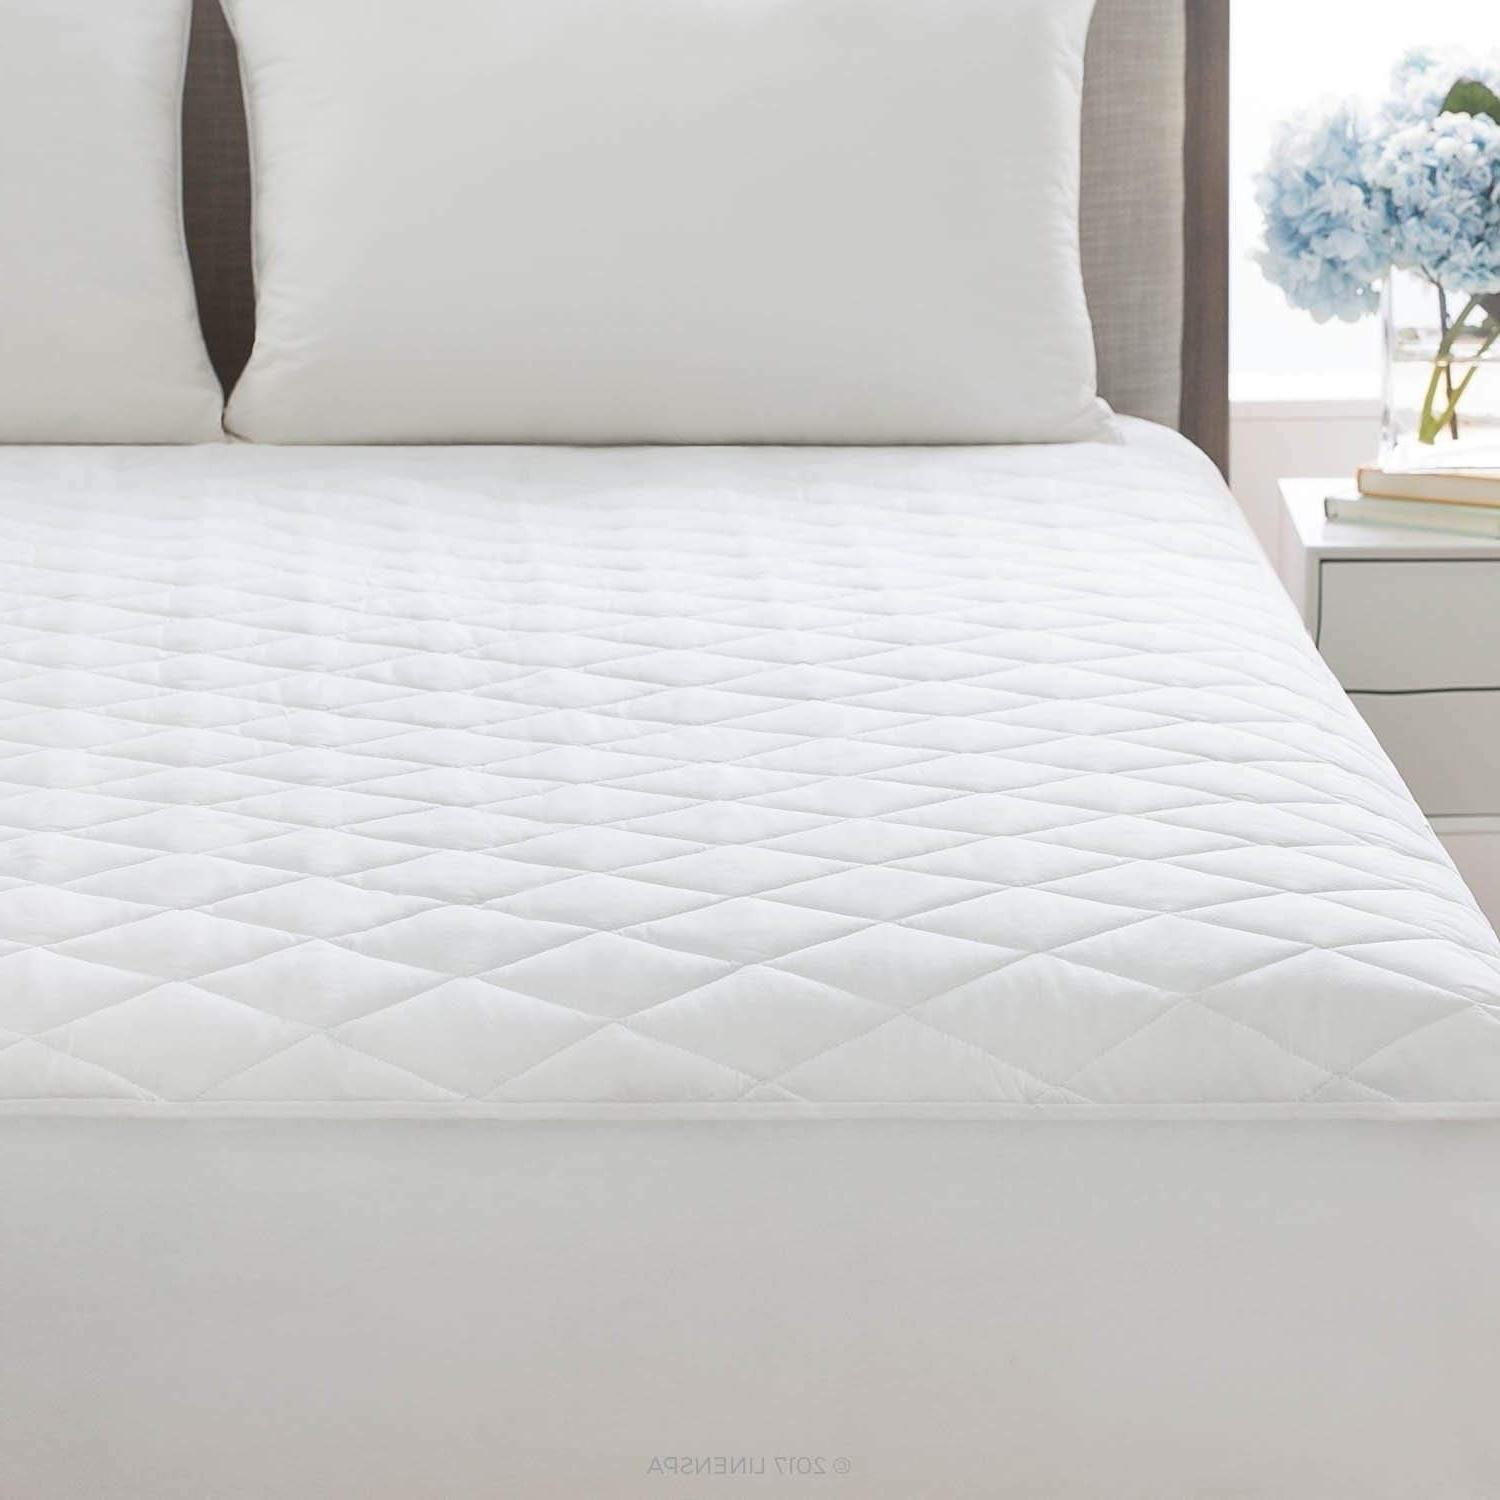 "Cal King Quilted Mattress Protector Pad Topper Cover 16"" Dee"